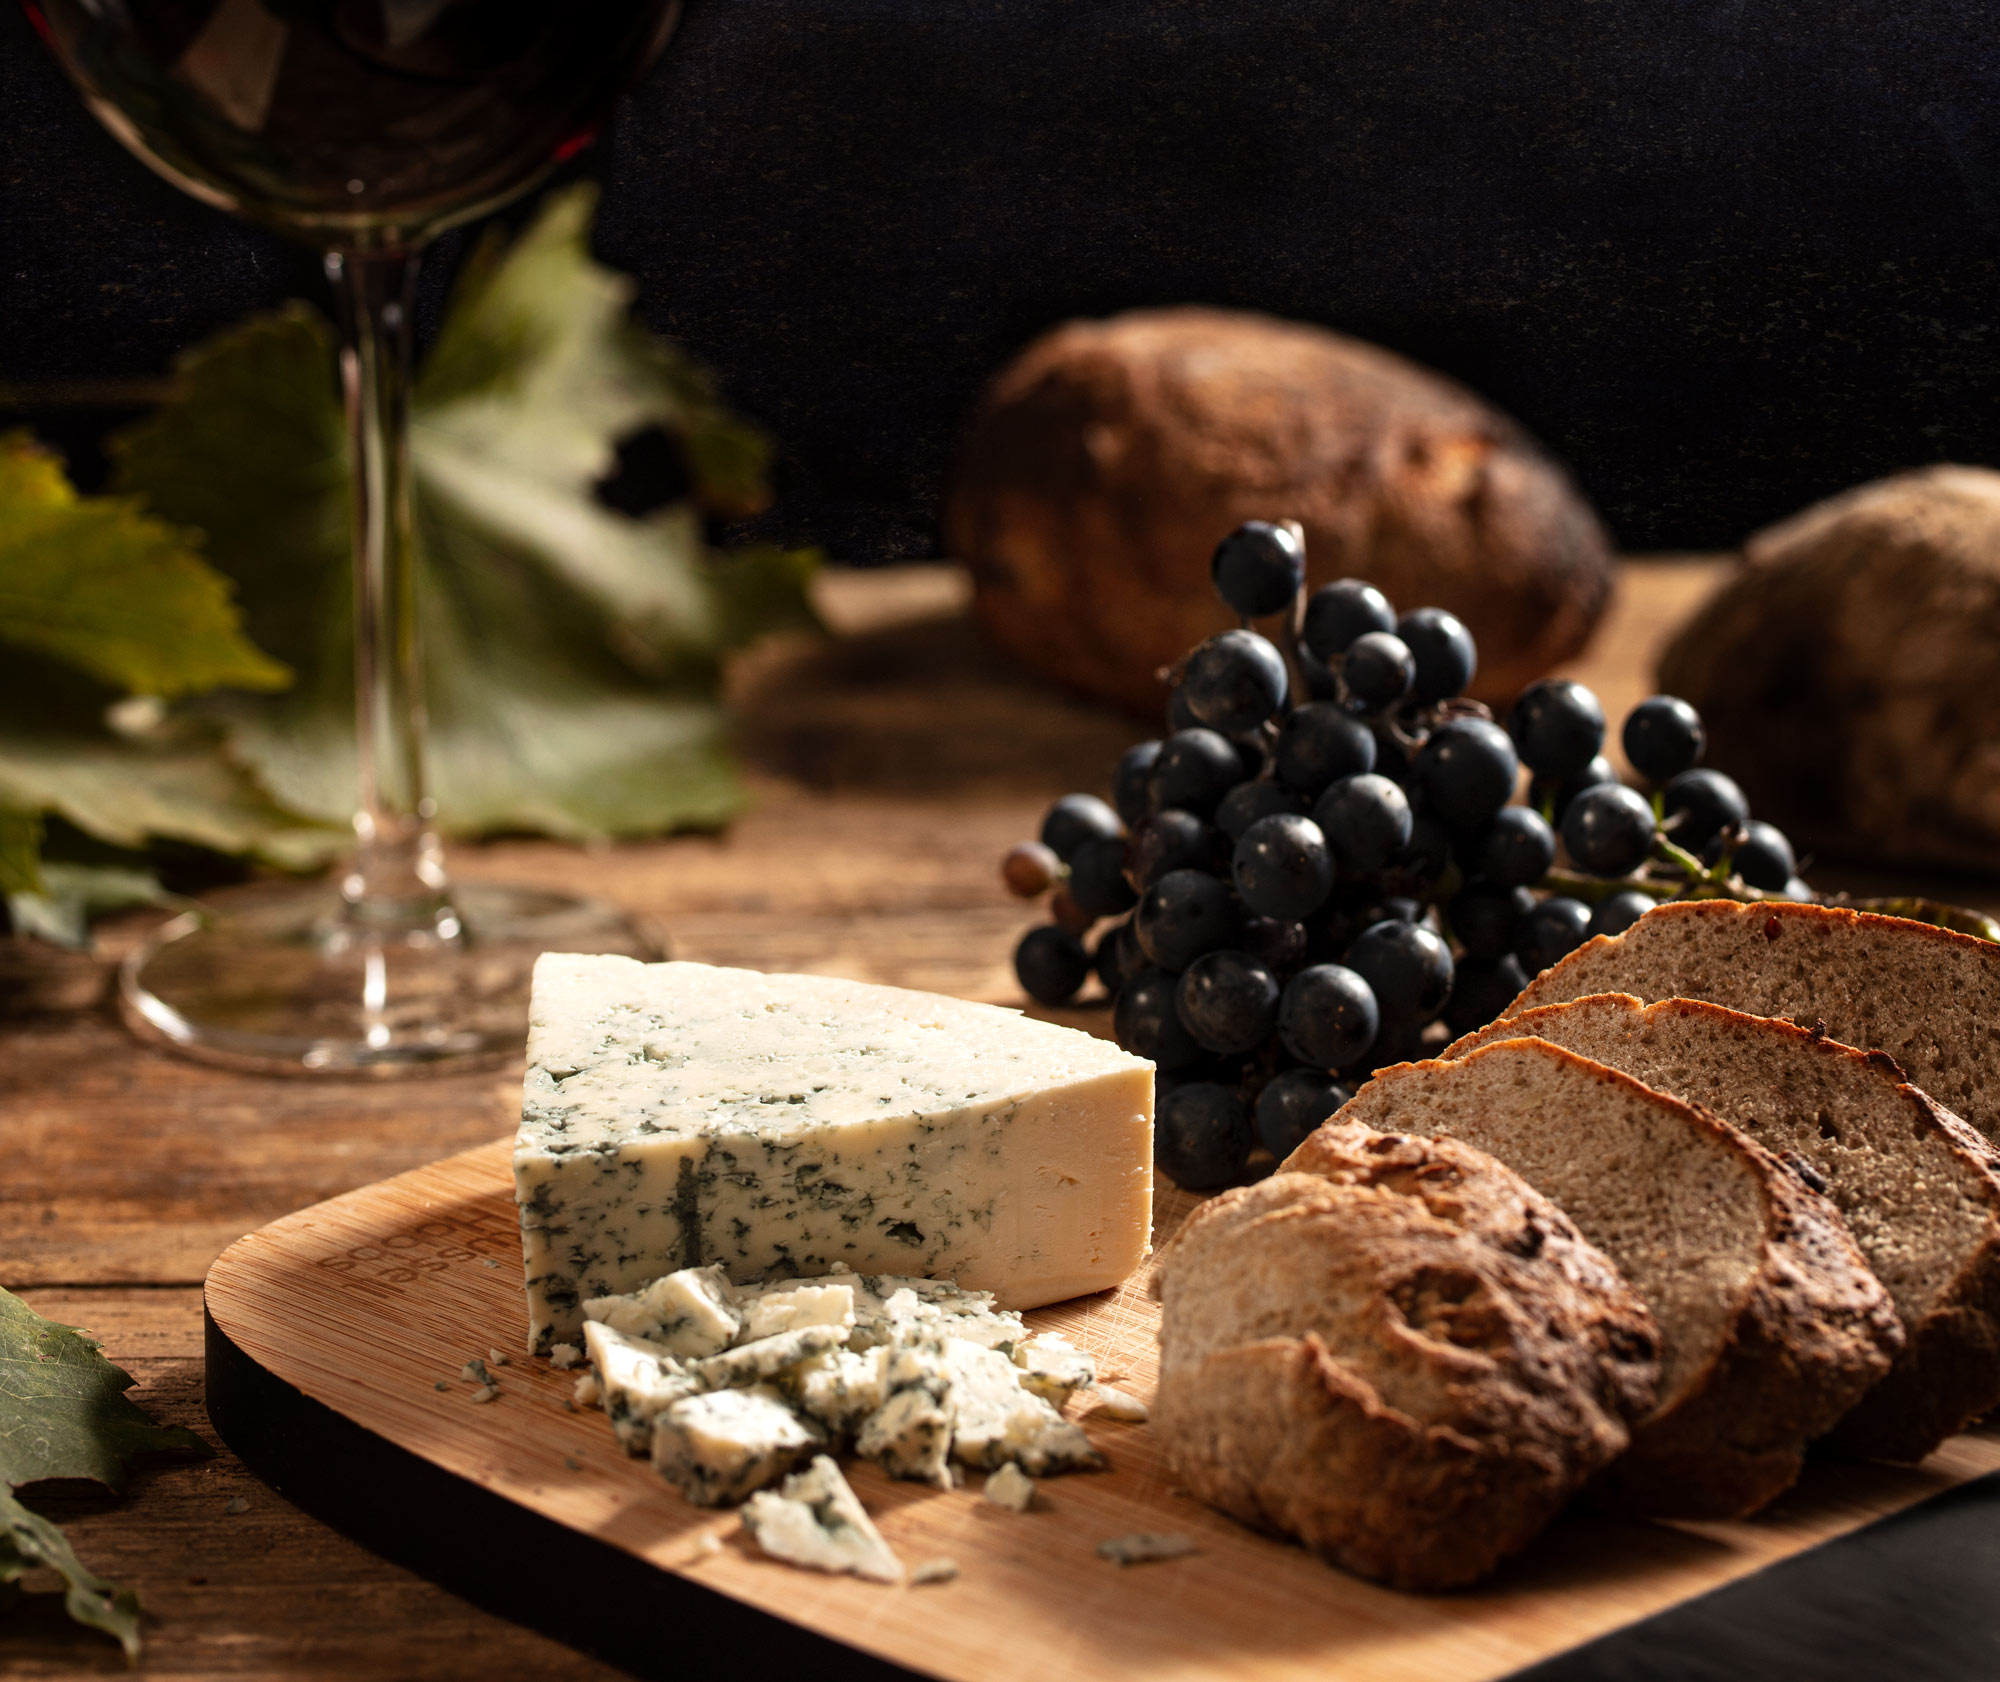 Food photography moody wine and cheese Swiss Hotel Photographer Adrian Kilchherr